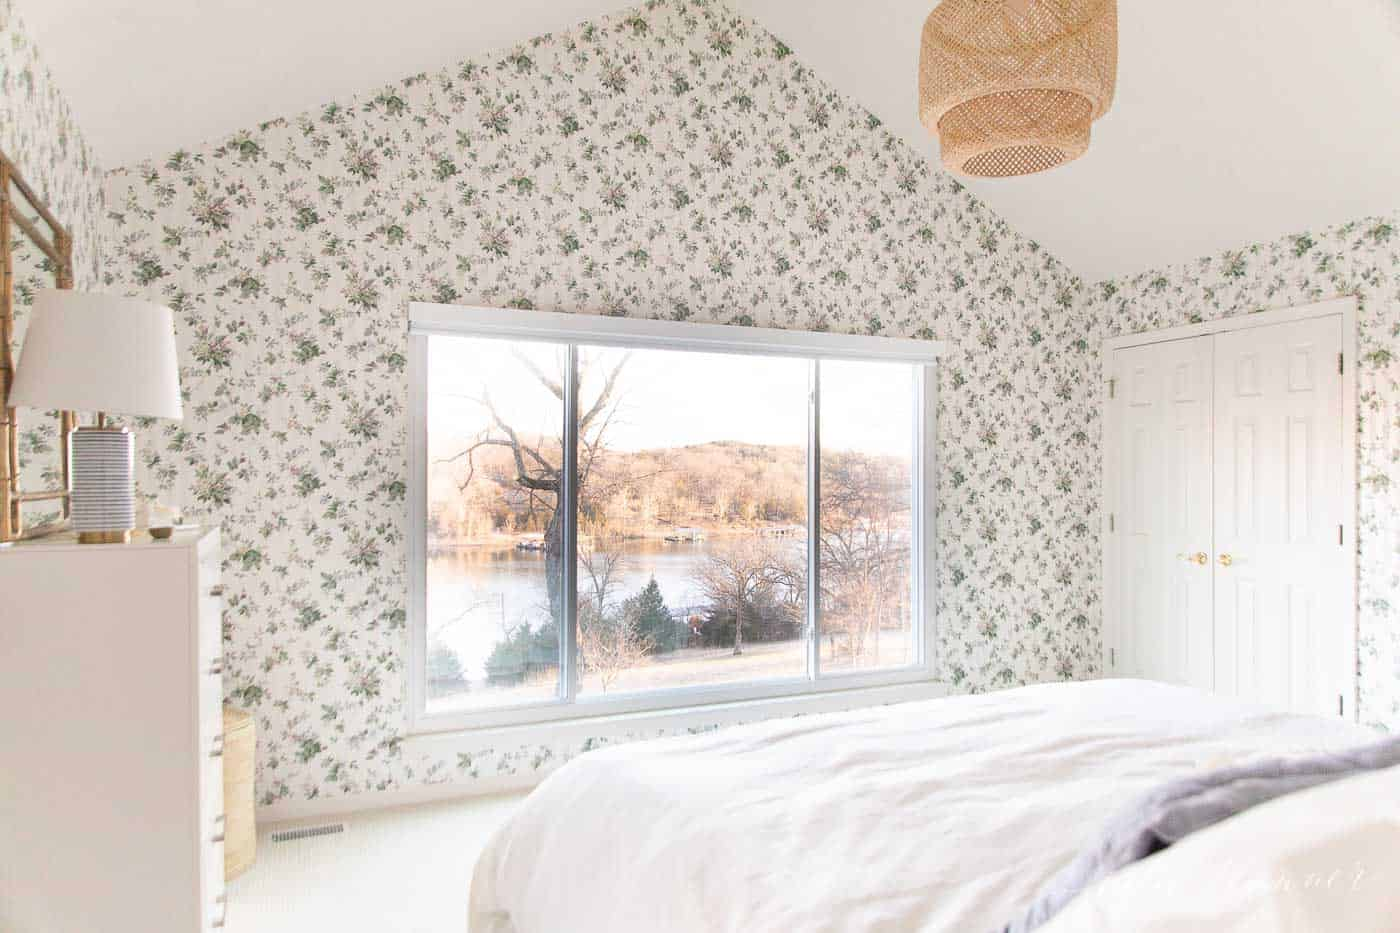 A cottage bedroom with white bedding, floral wallpaper, and a big window with a blackout roller shade as window decor.